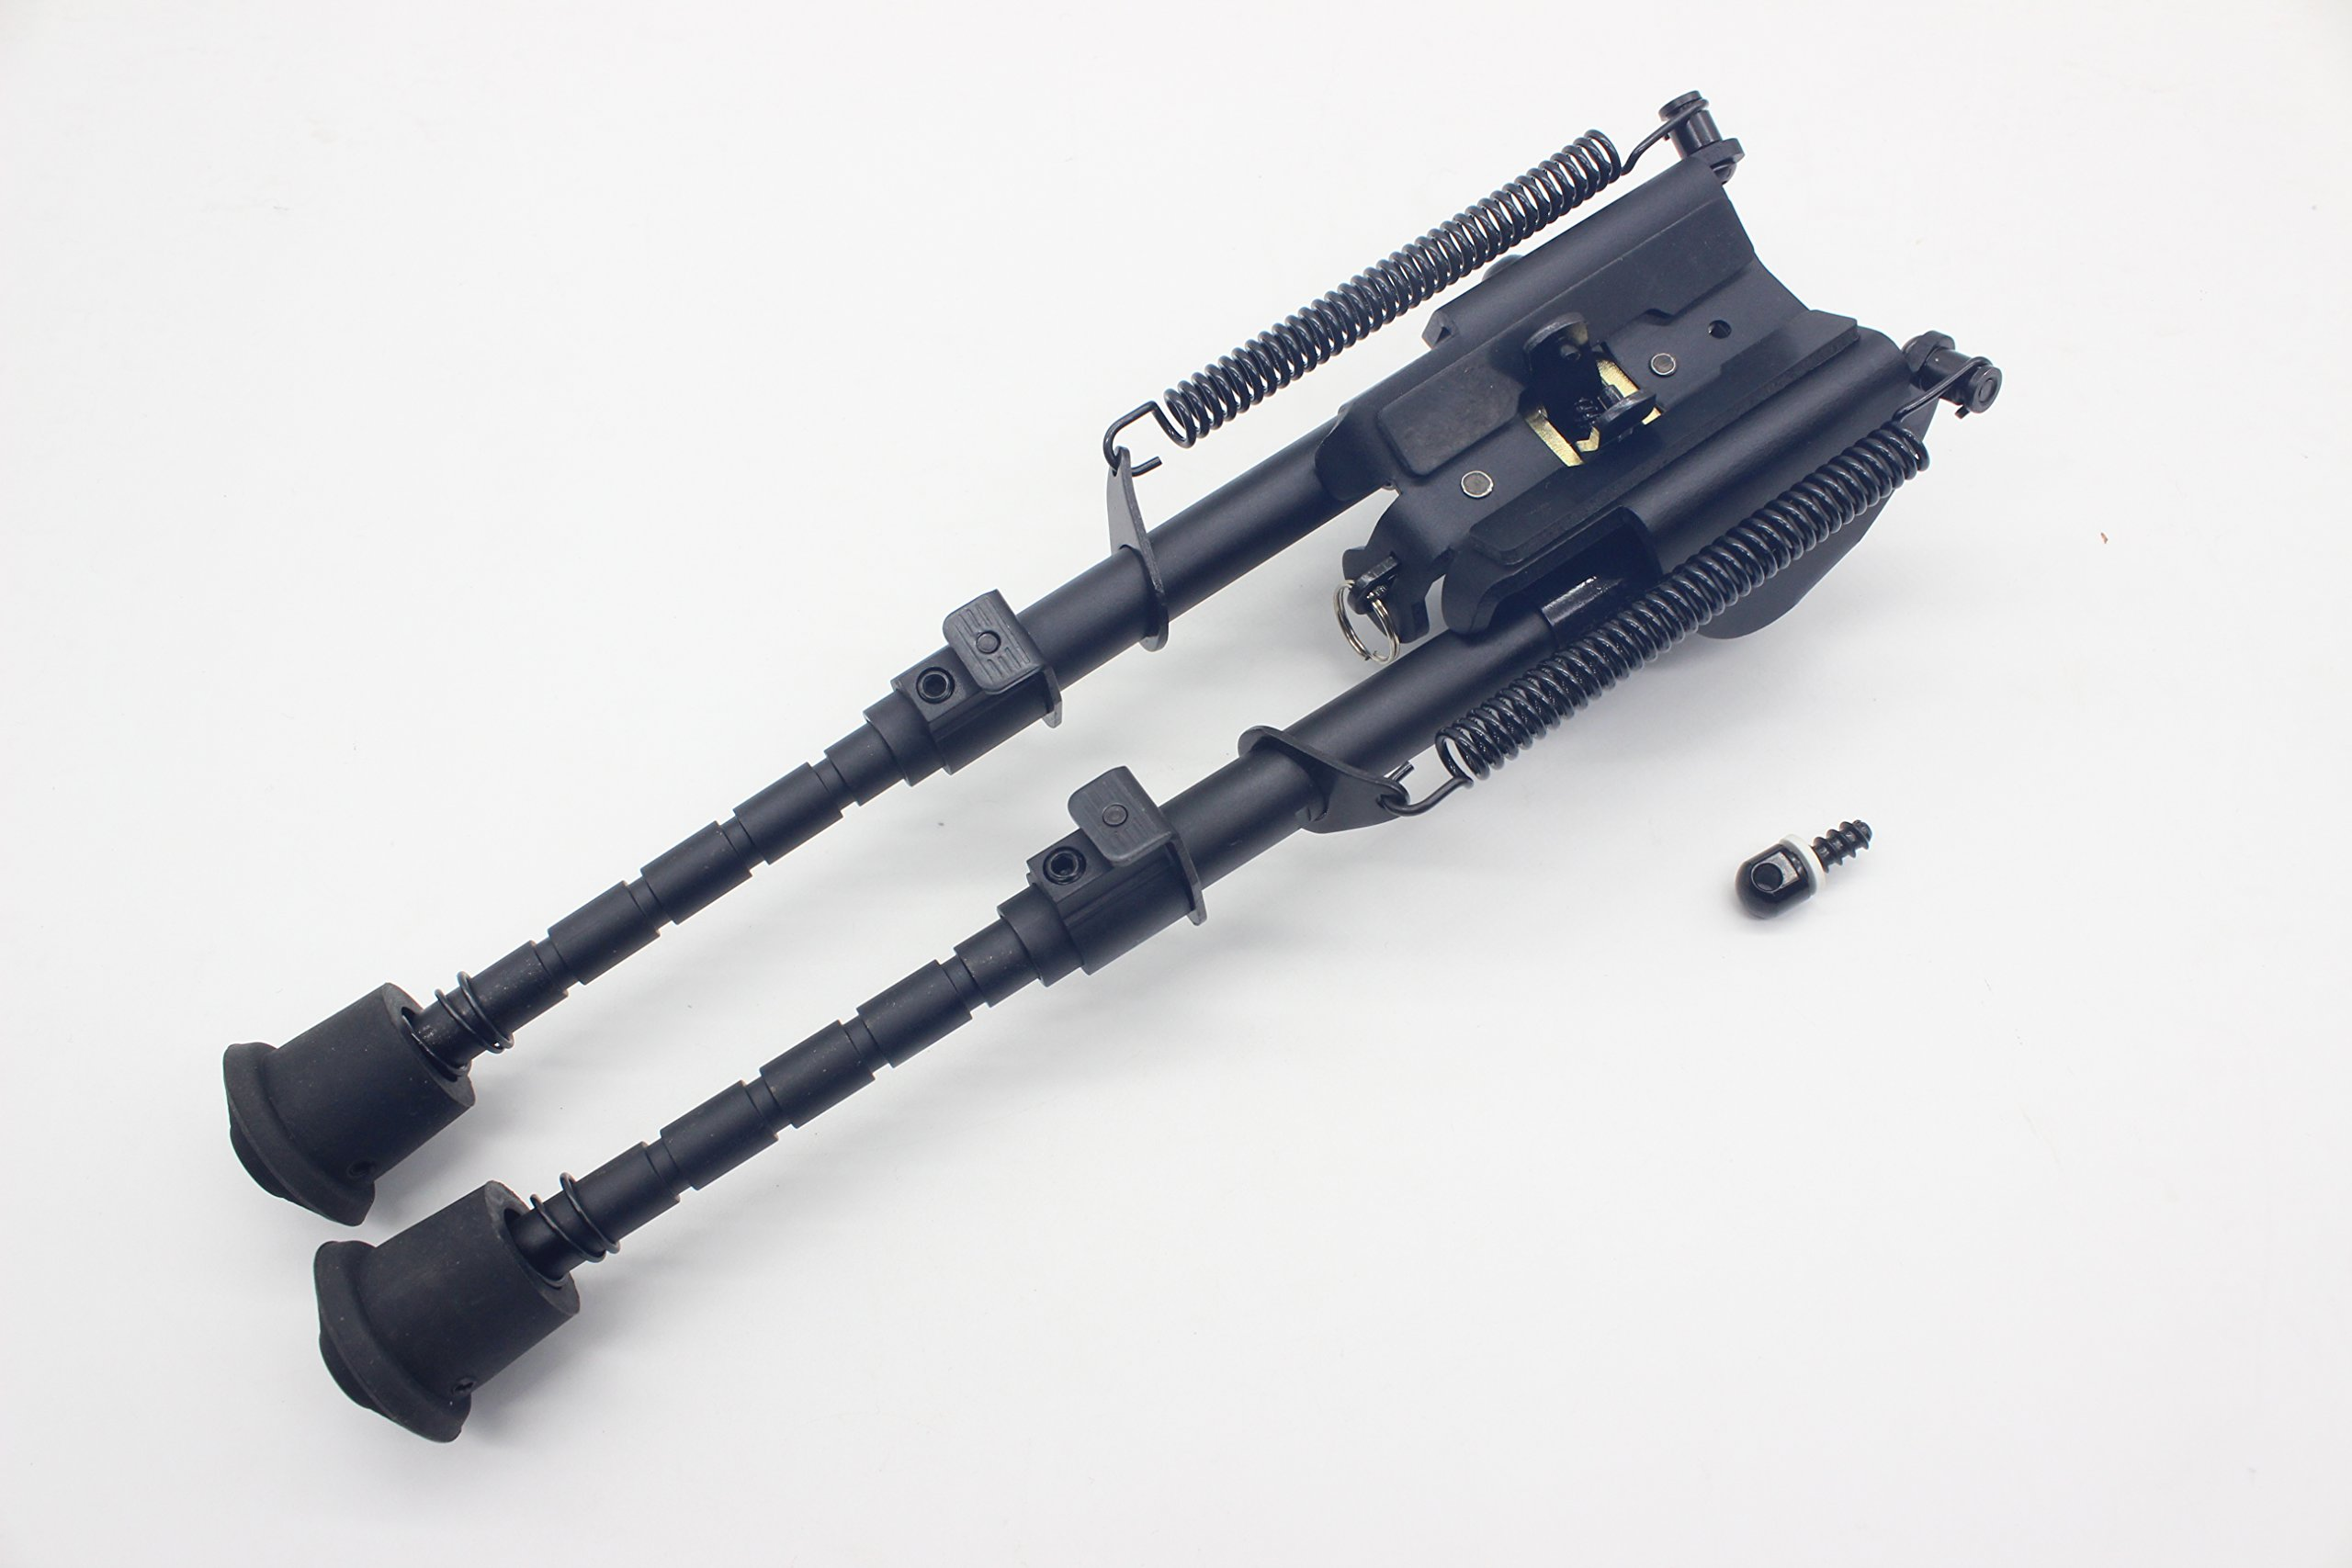 6 - 9 Inches Bipod for Tactical Rifle with screw